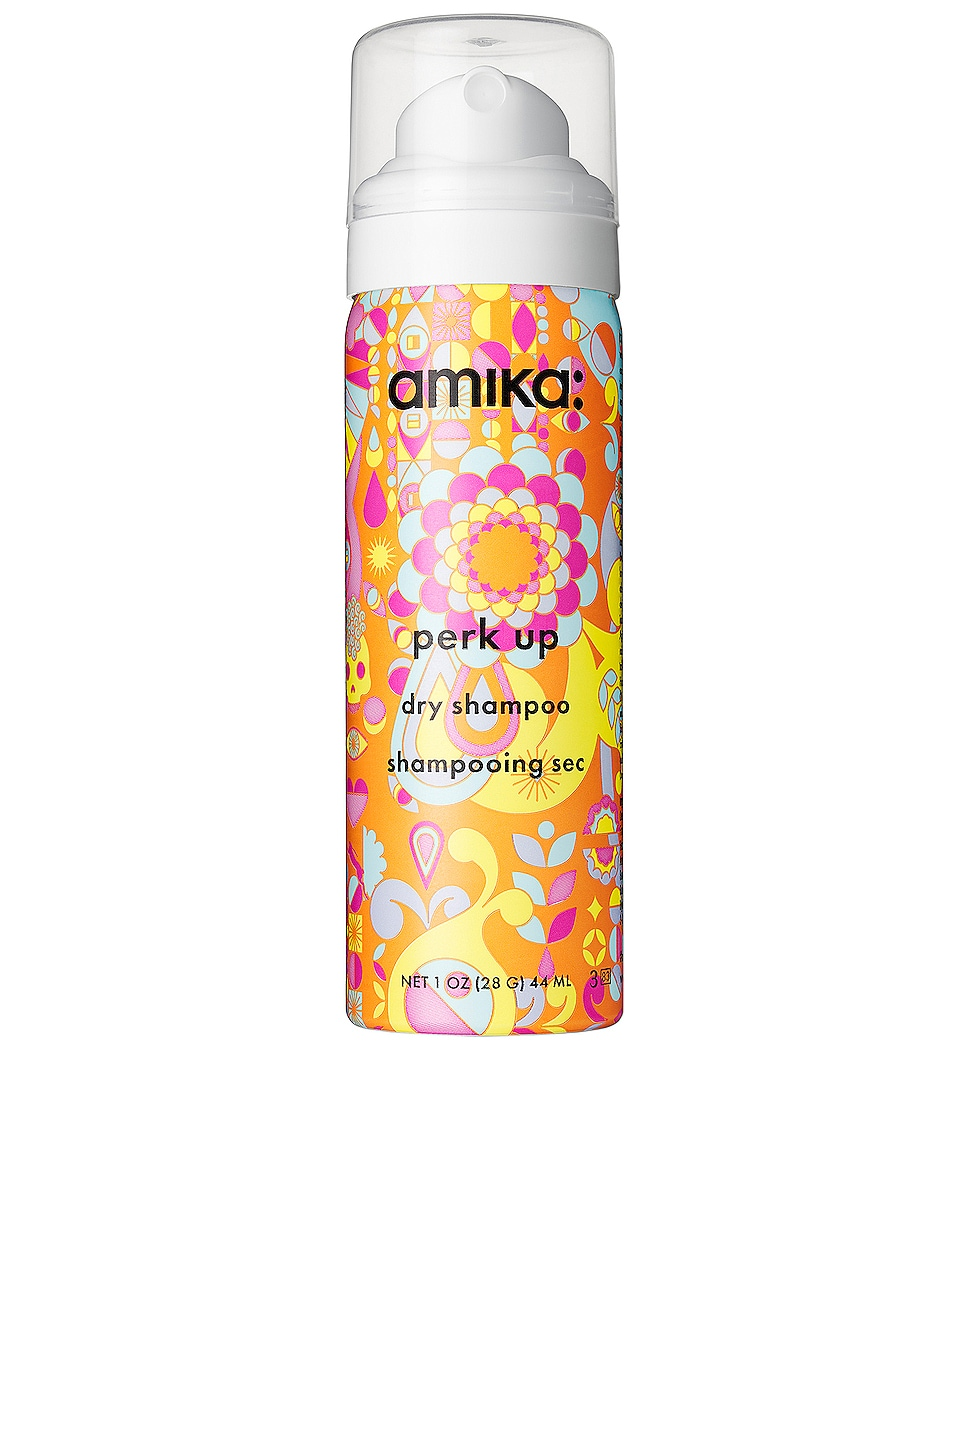 amika Travel Perk Up Dry Shampoo